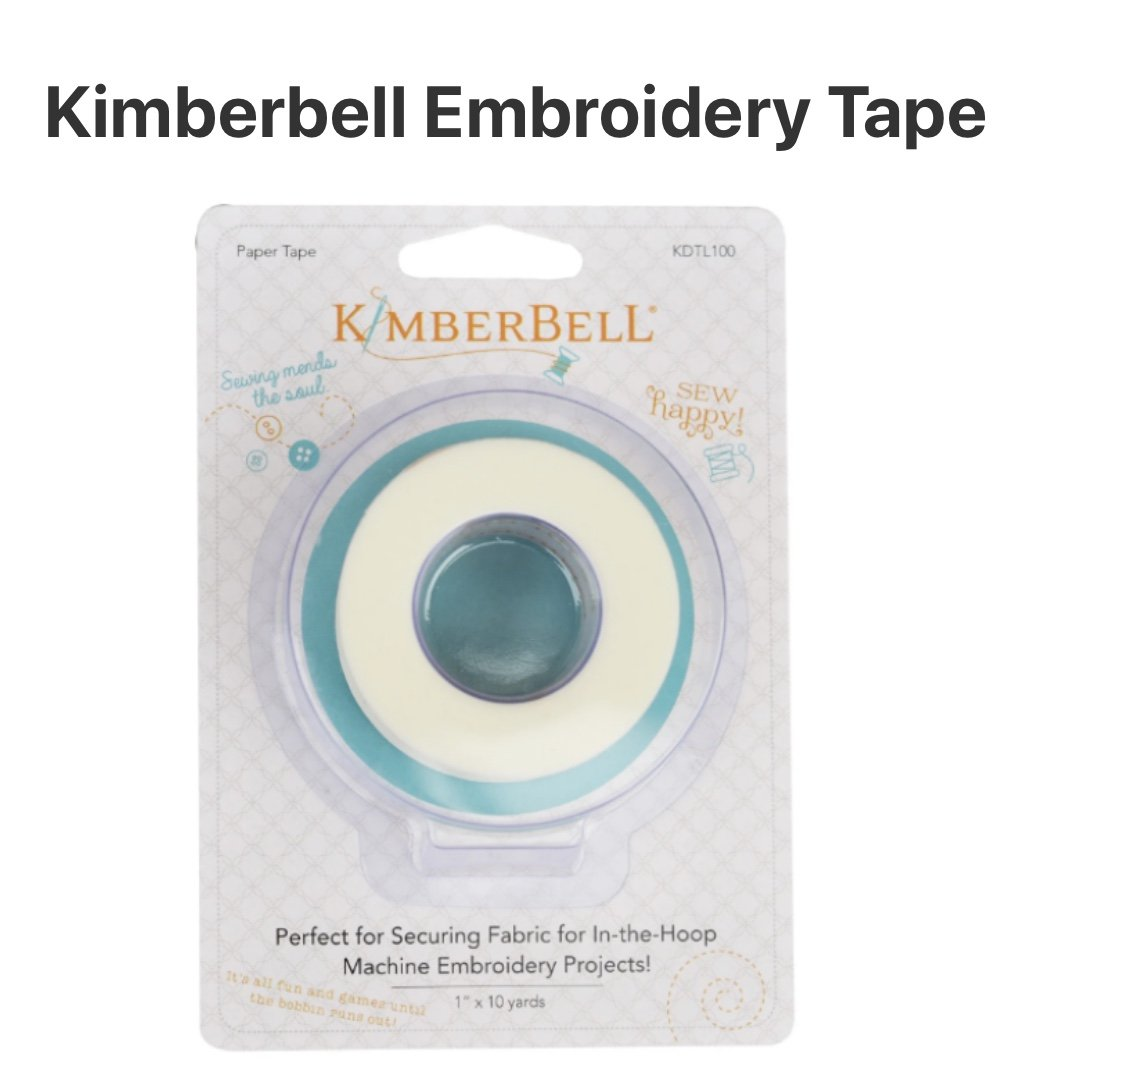 Kimberbell Embroidery Paper Tape